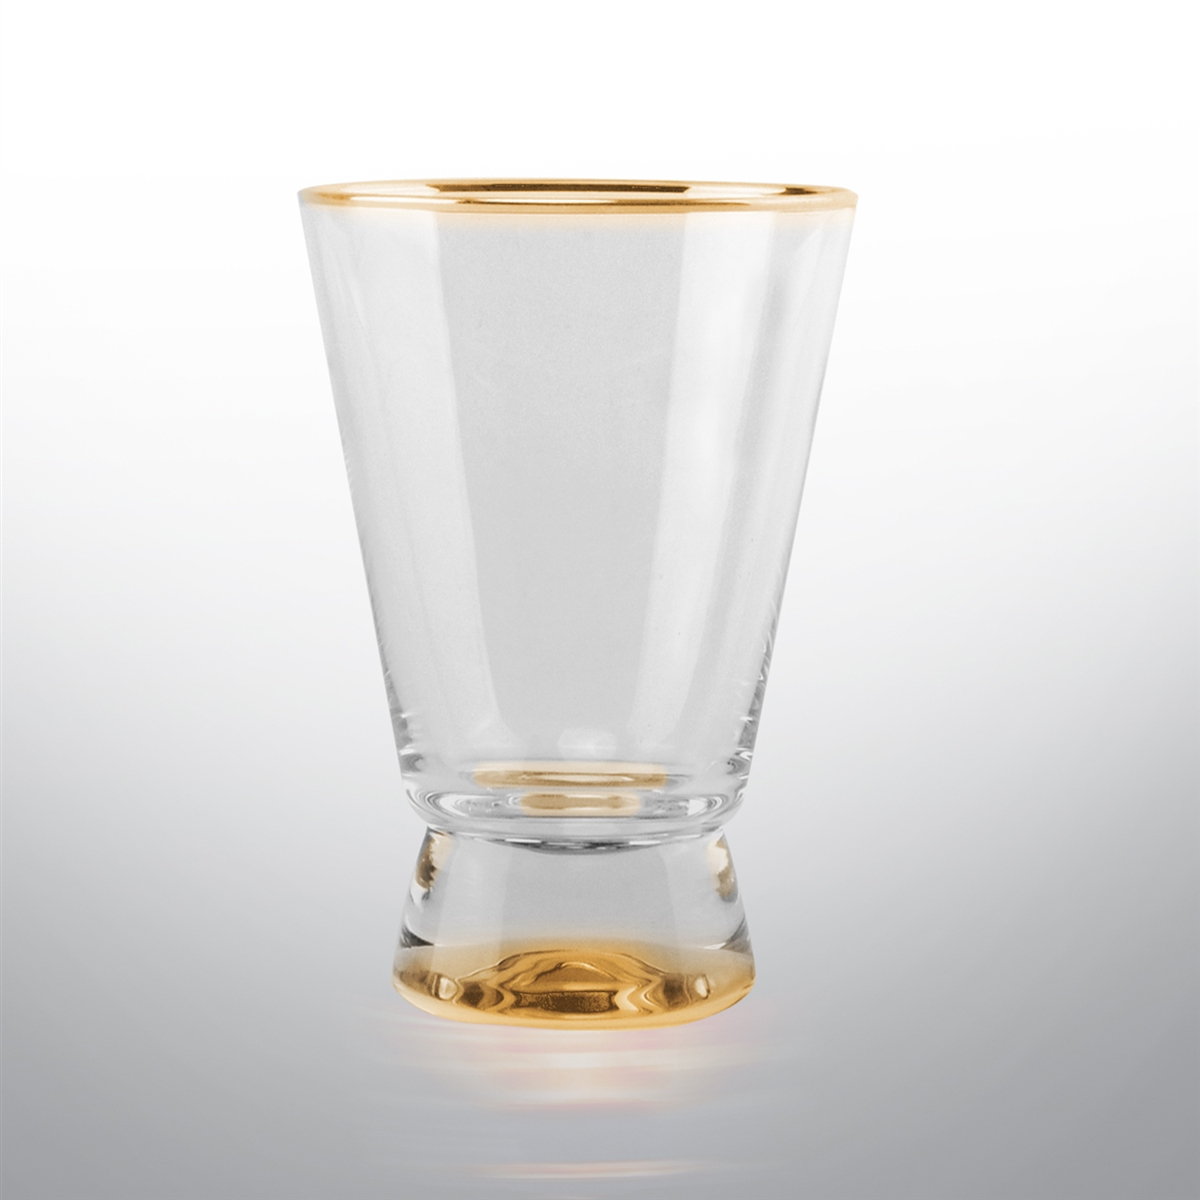 Rodeo Set of 4 Highball Glasses - Gold or Silver Rimmed